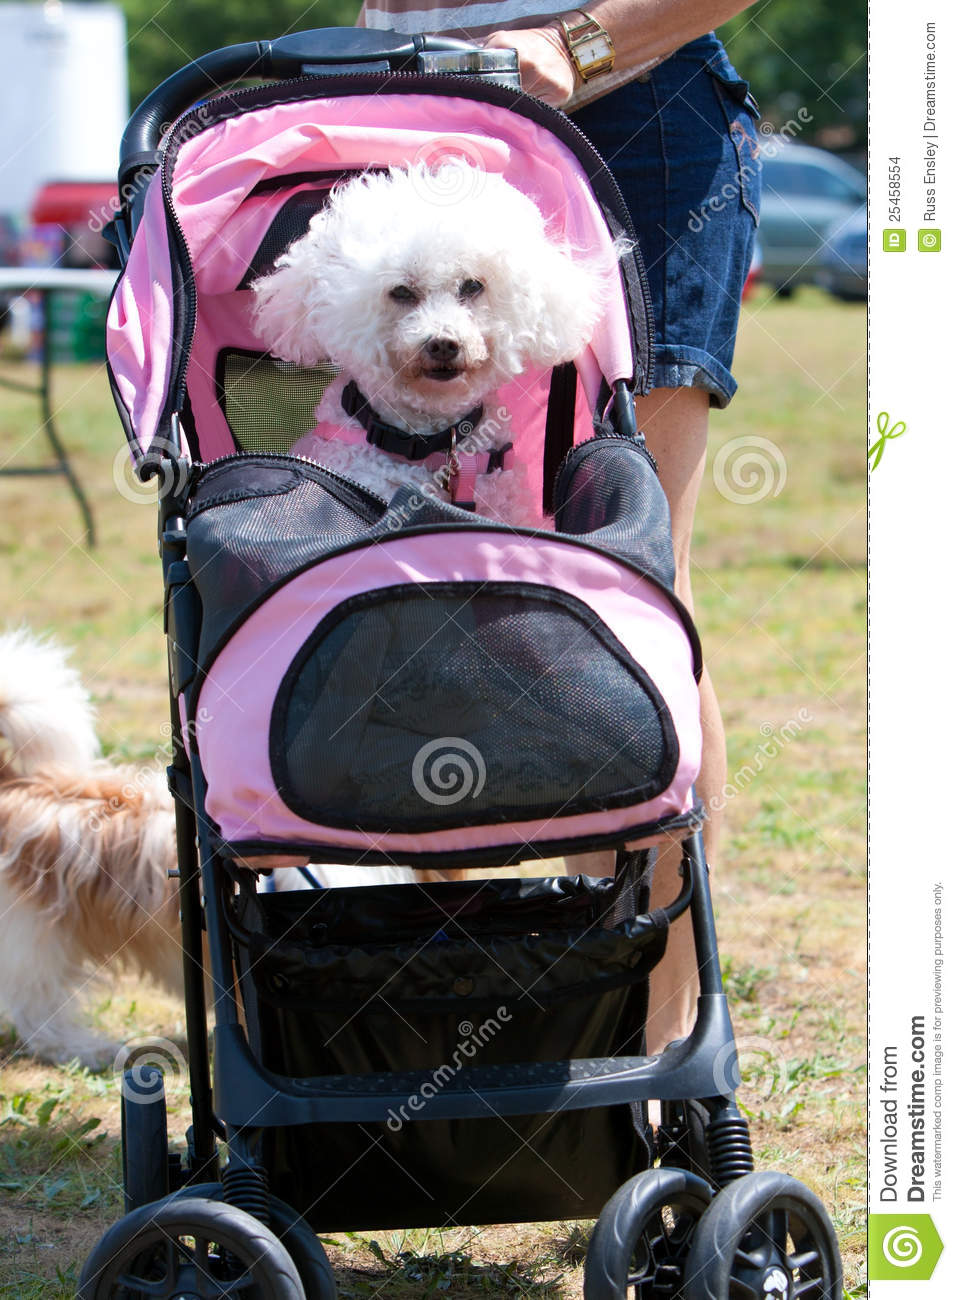 Baby Stroller Clipart Black And White Woman Pushes Poodle In Baby Stroller Editorial Stock Image